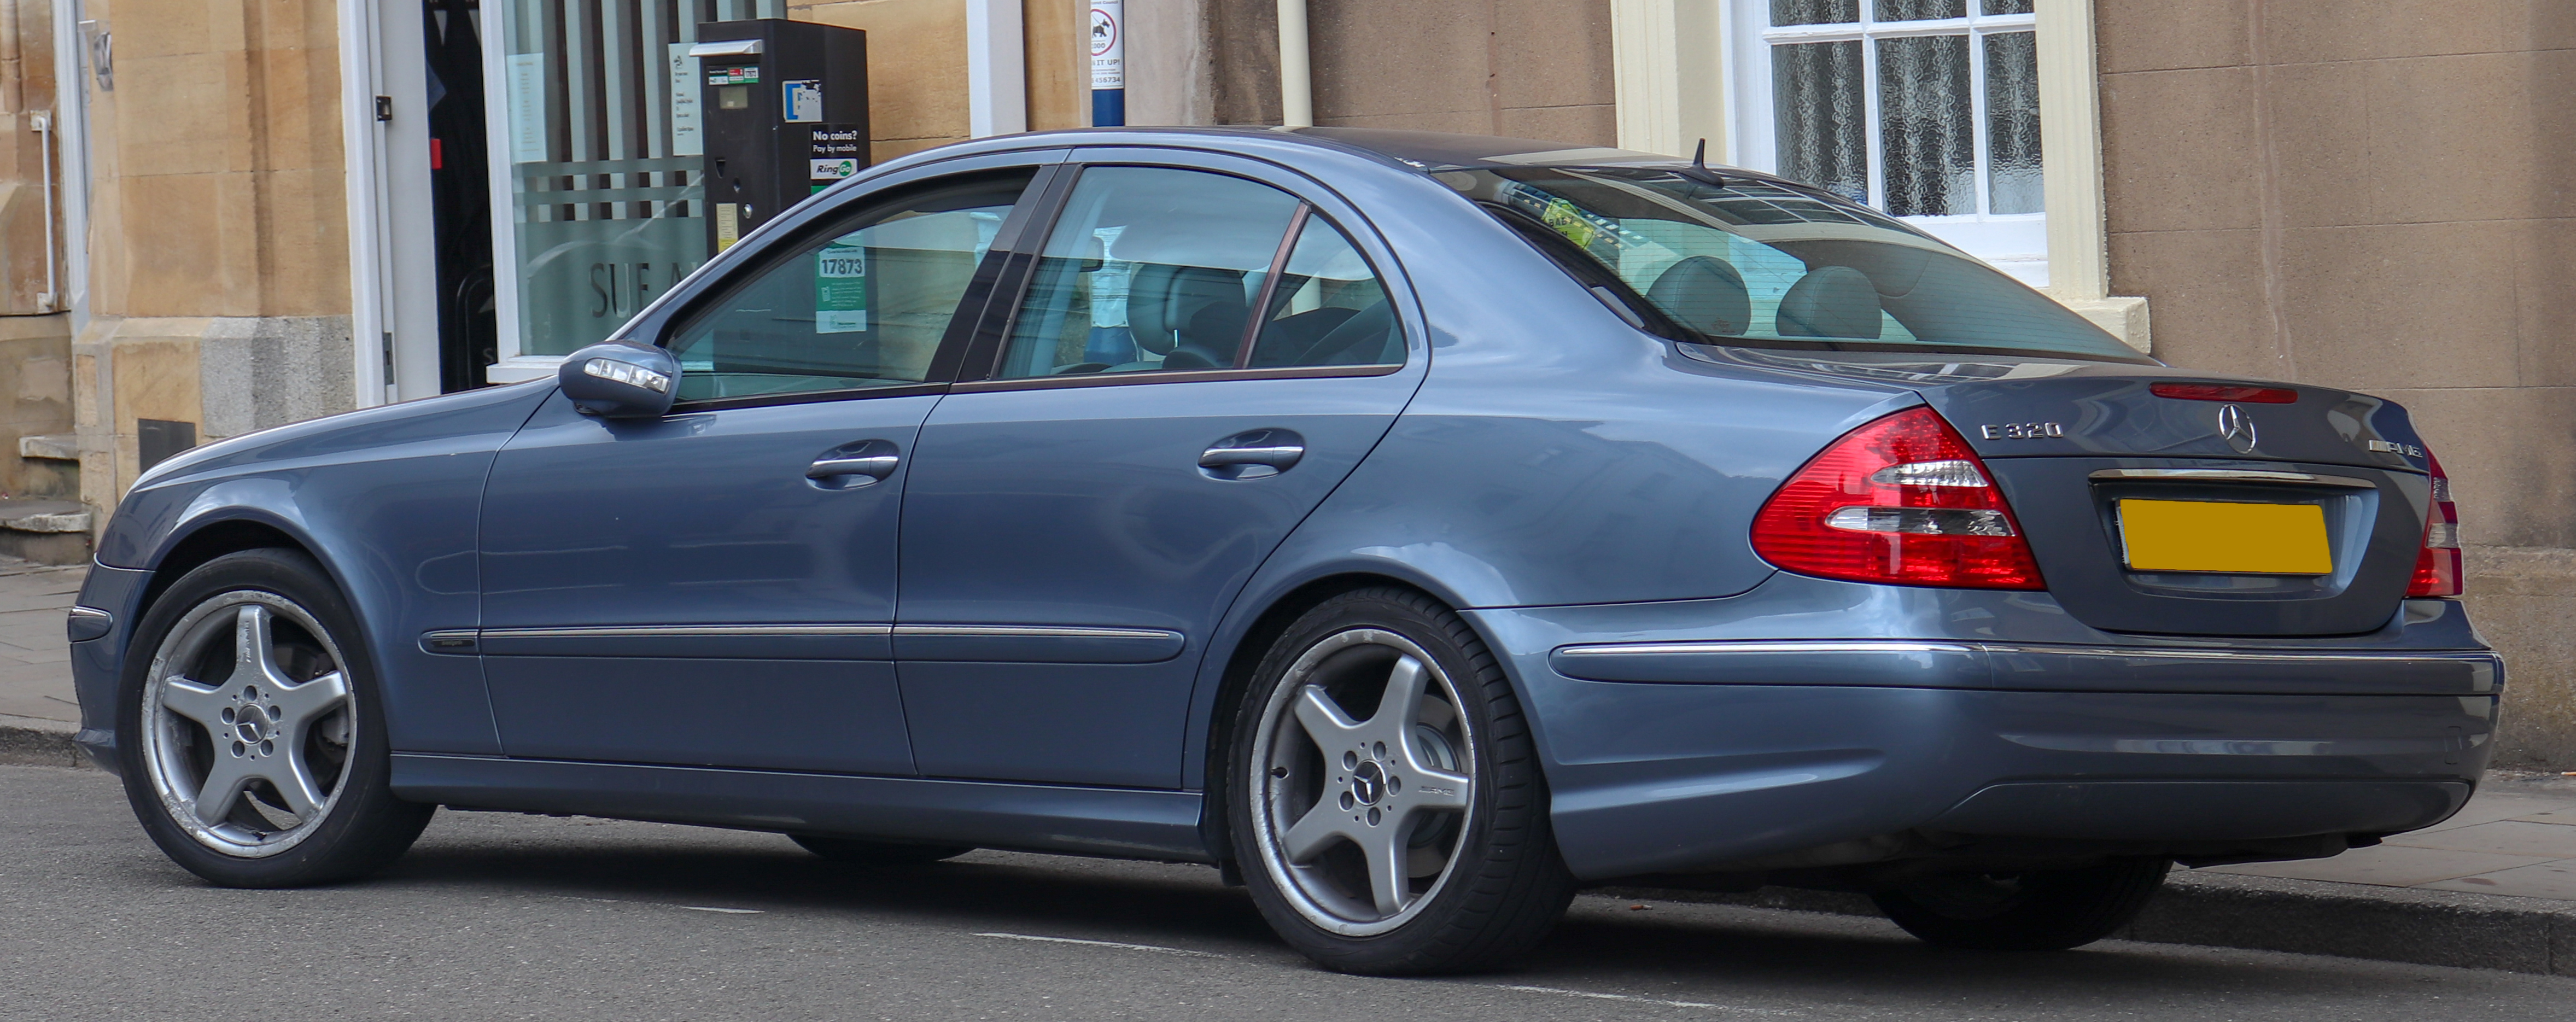 File:2004 Mercedes Benz E320 CDi Avantgarde Automatic 3.2 (With AMG  Aesthetic)